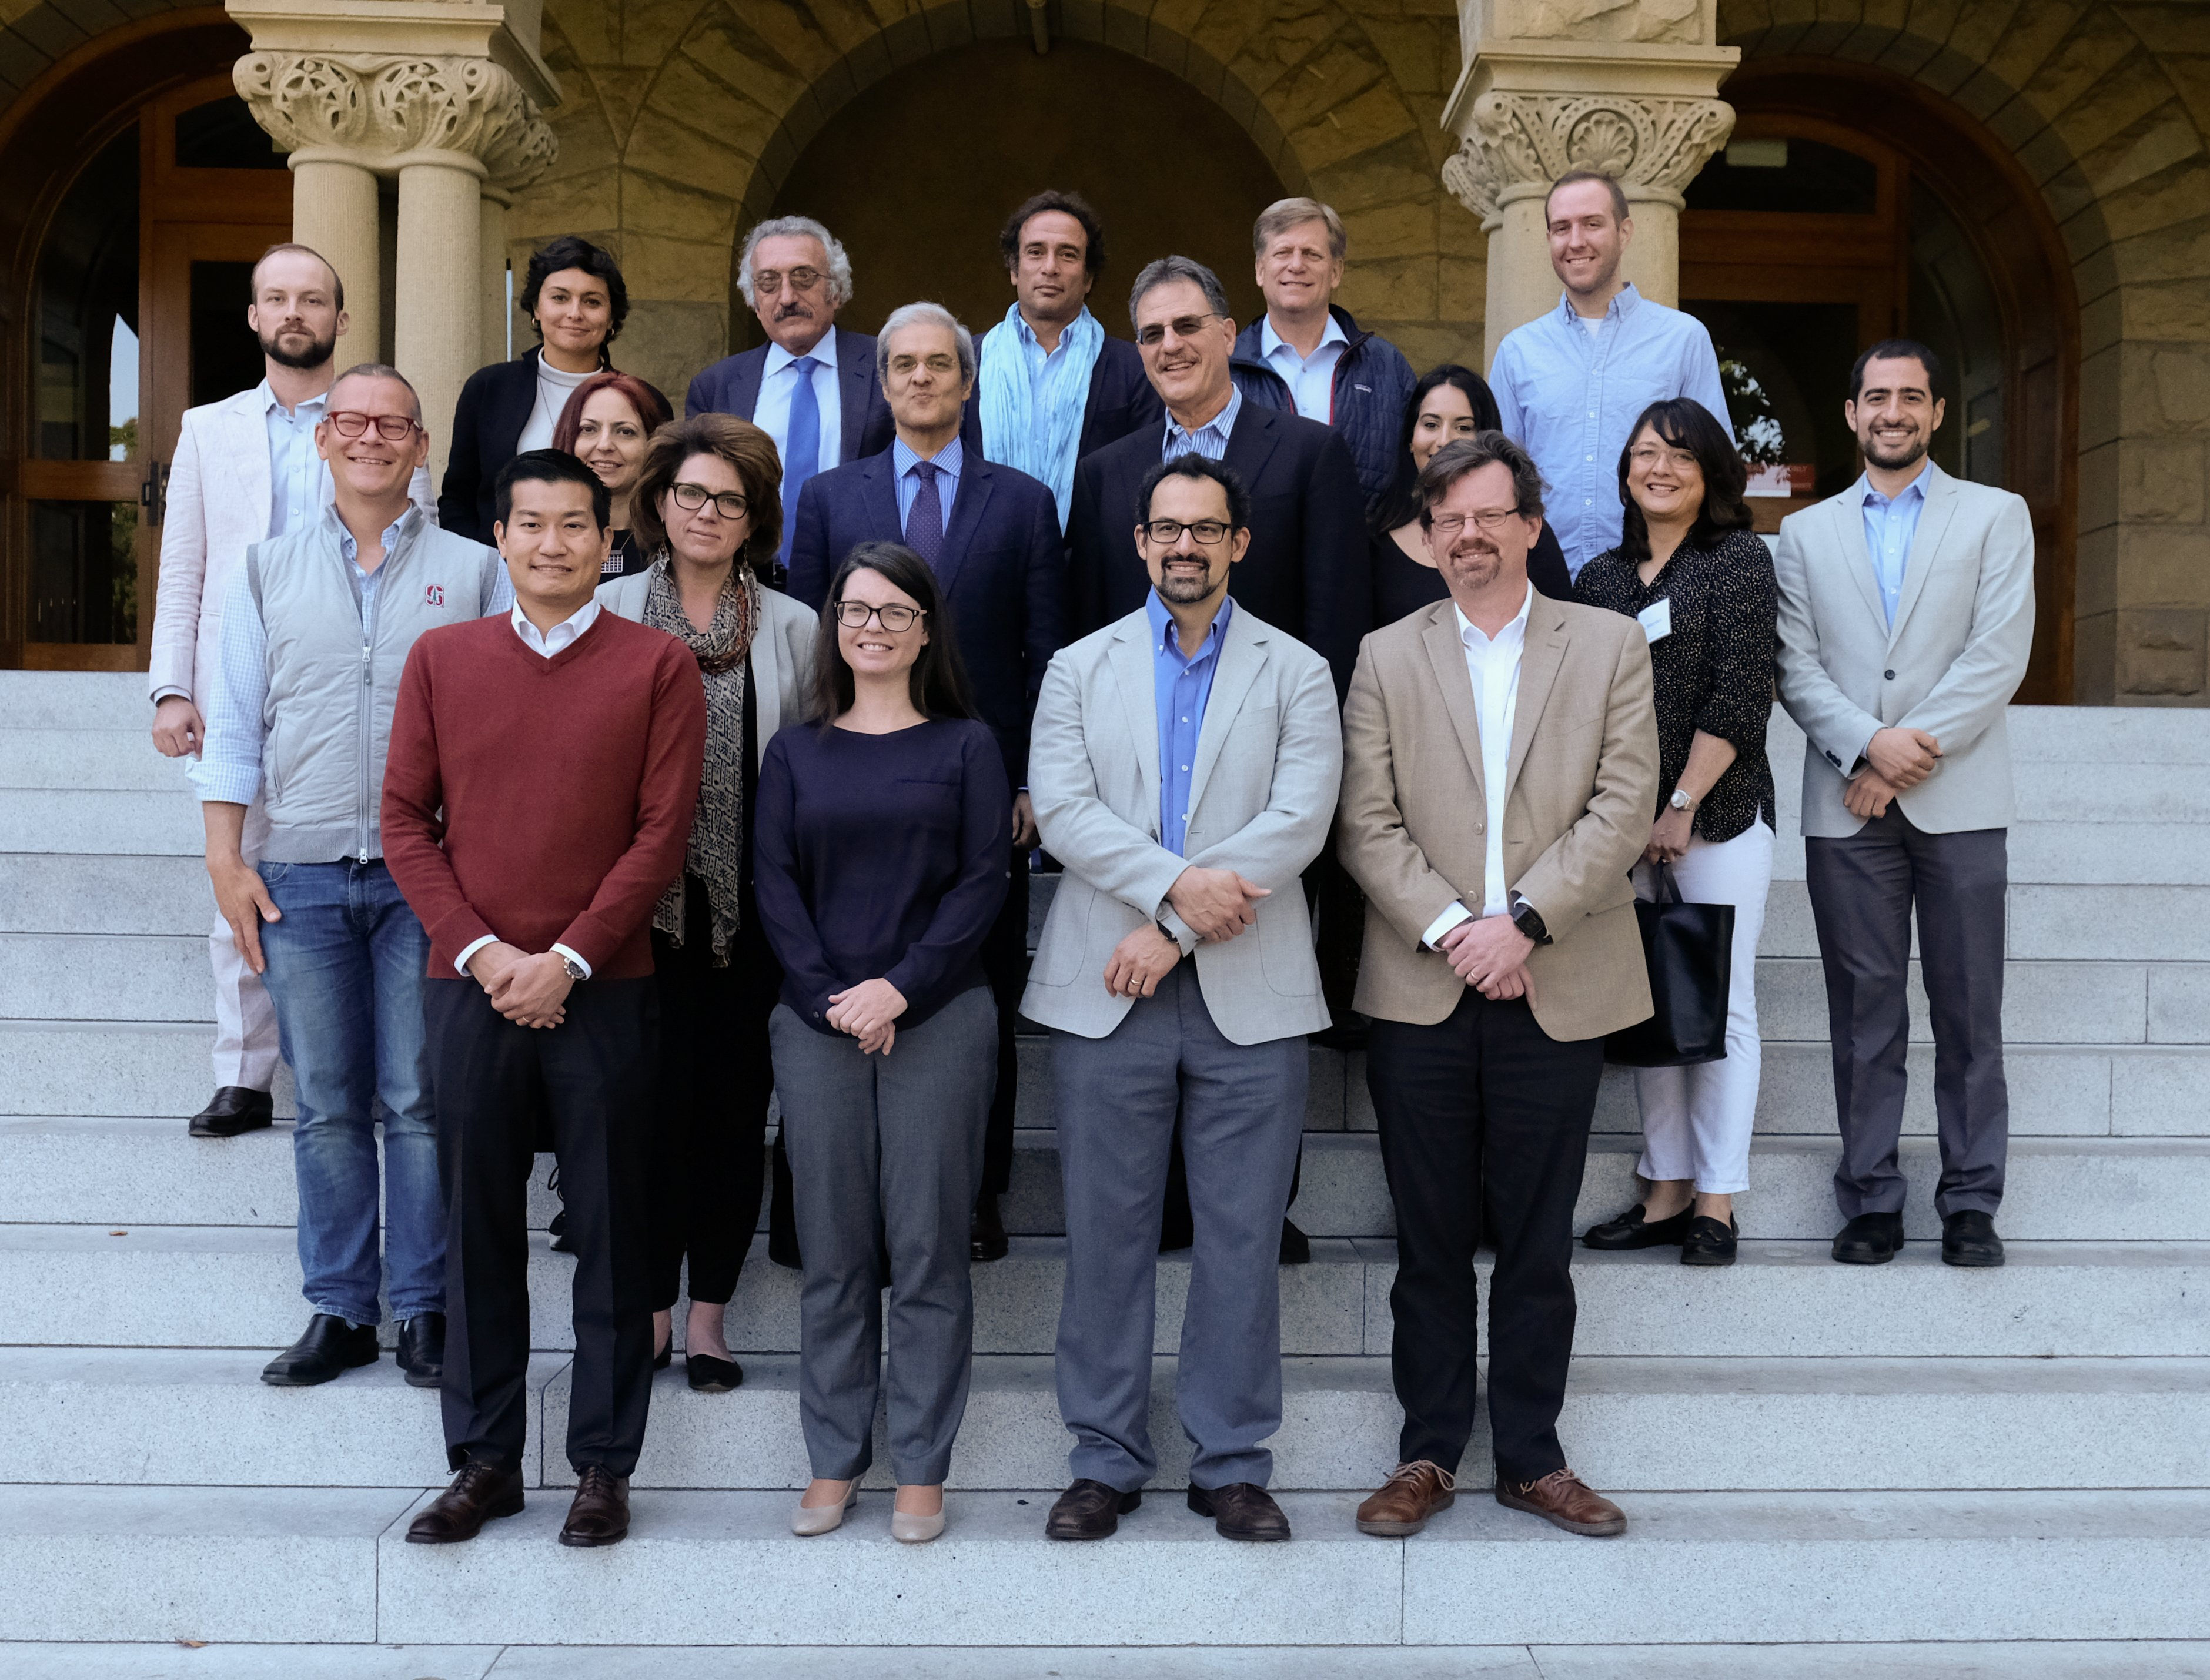 group photo from annual conference